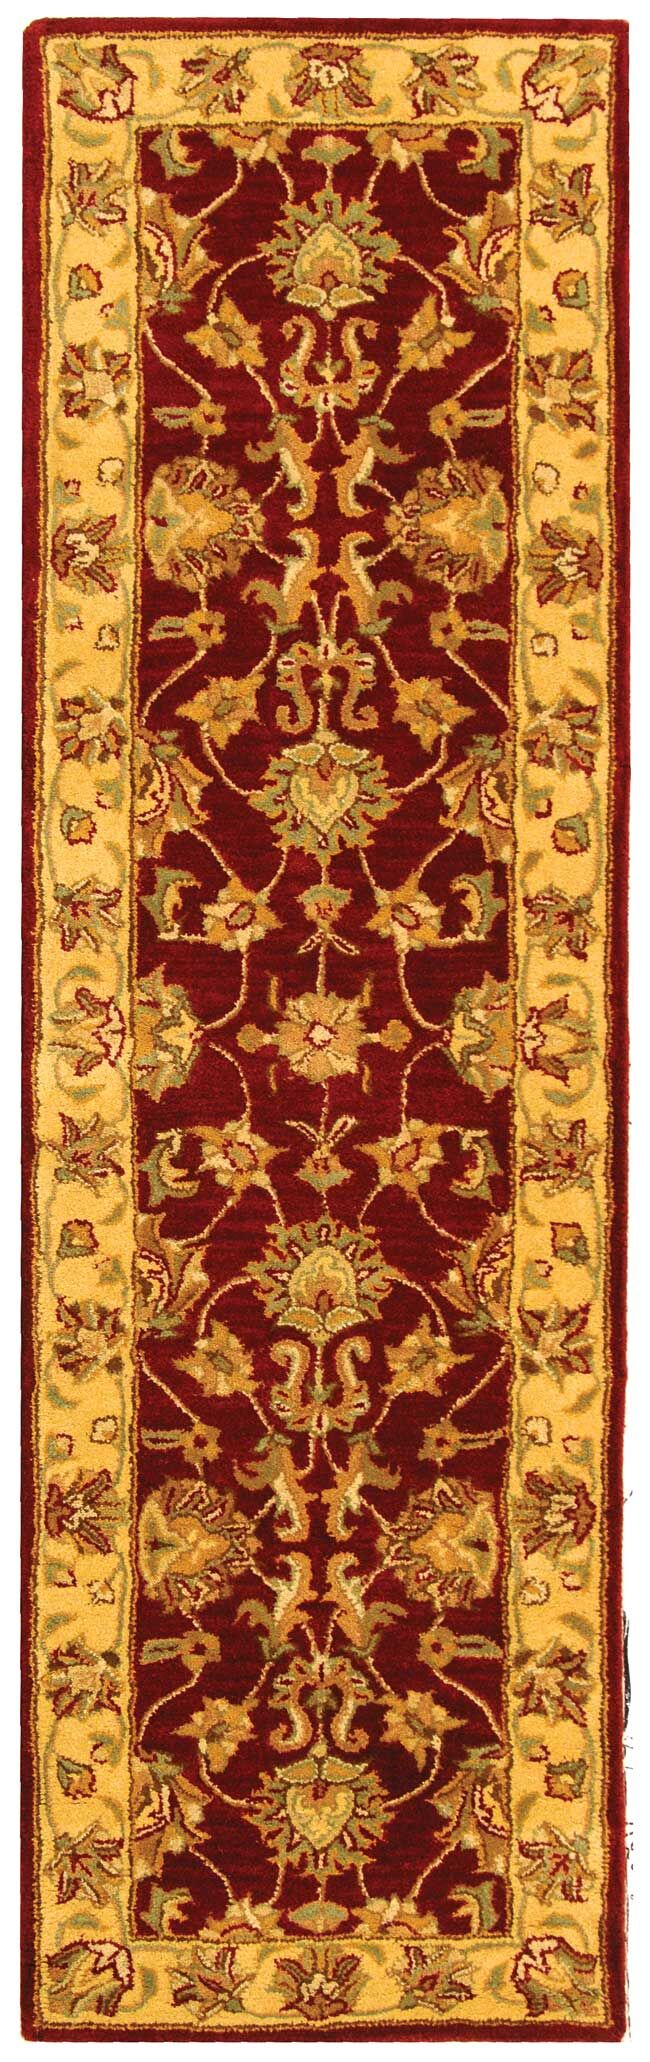 Cranmore Hand-Tufted Wool Red/Gold  Area Rug Rug Size: Runner 2'3